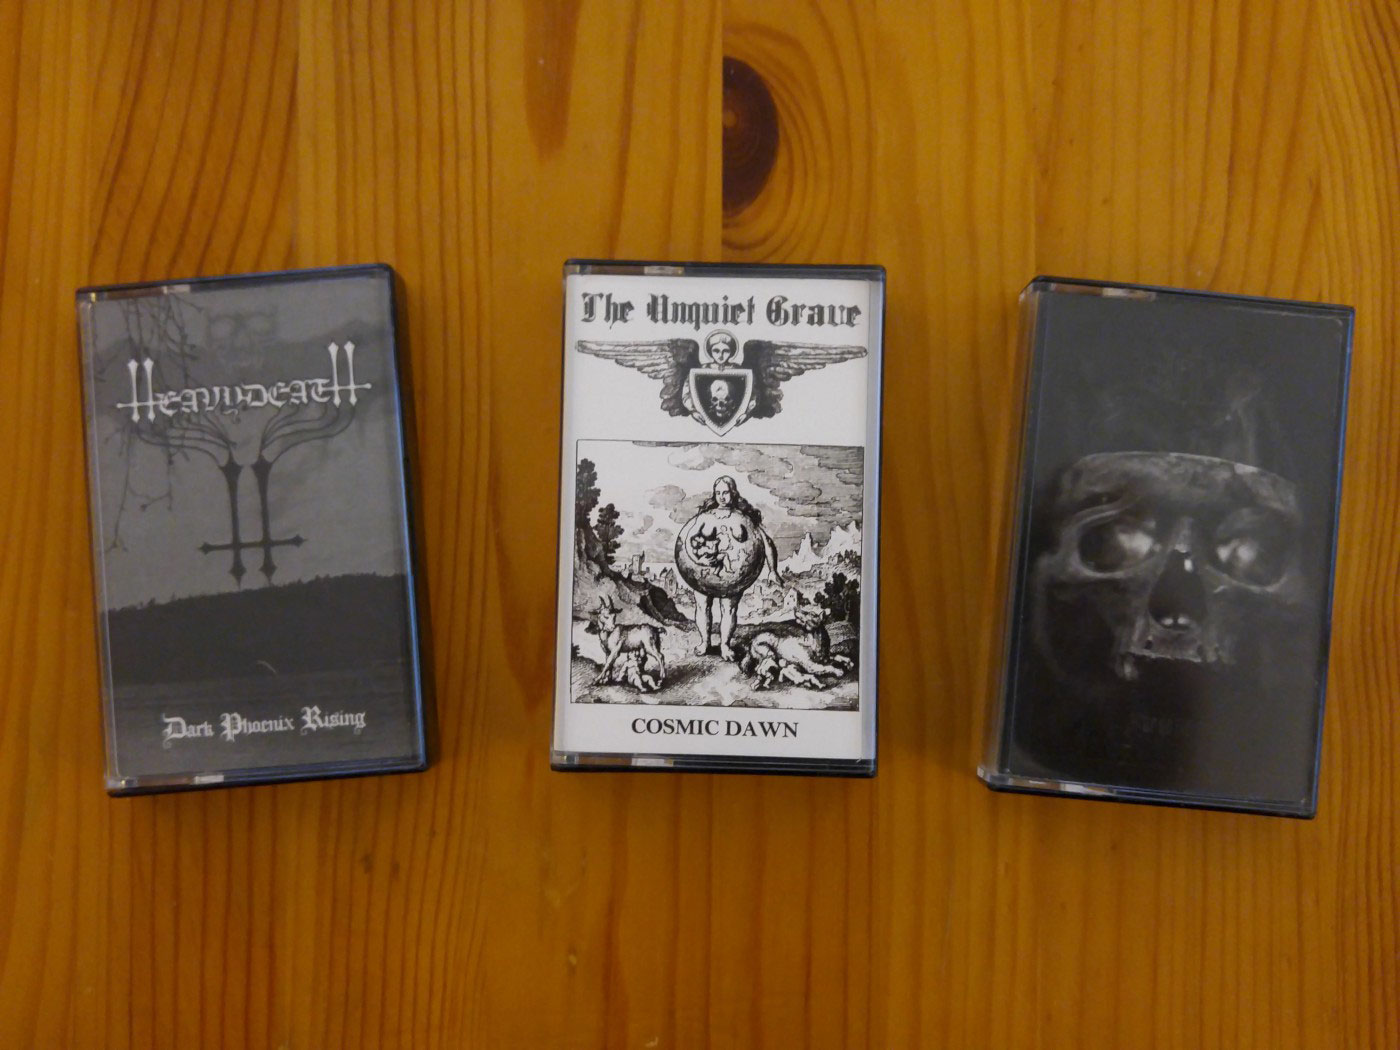 heavydeath-the-unquiet-grave-jupiterian-tapes